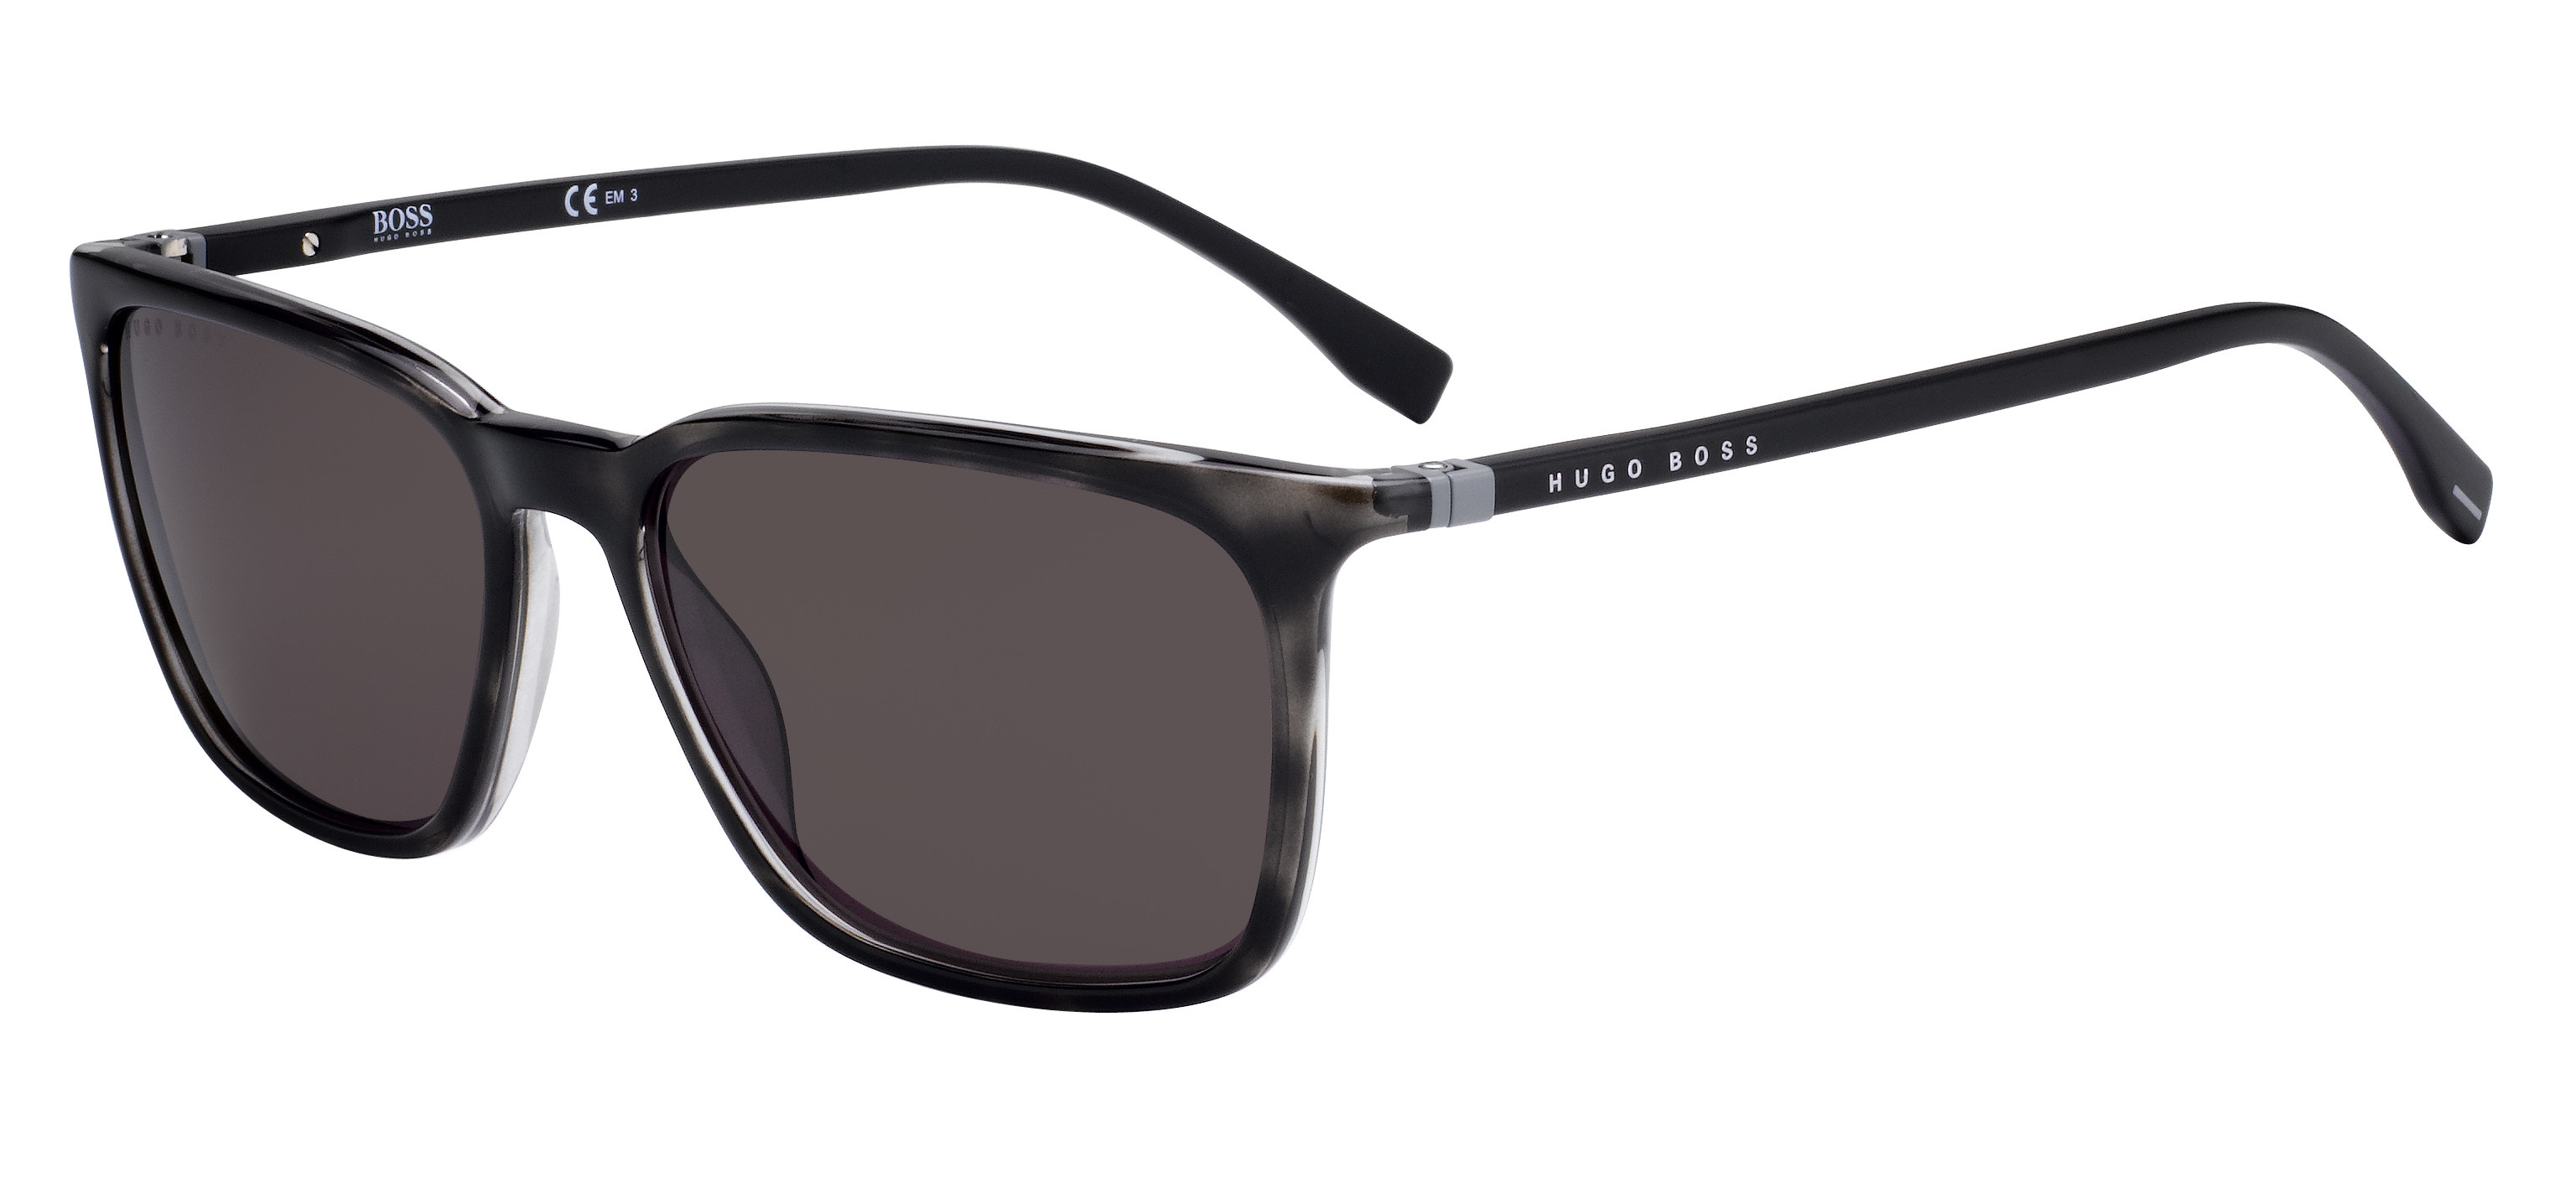 8876399b5b Boss 0959/S 56 Grises y Color Havana - Gafas Hugo Boss